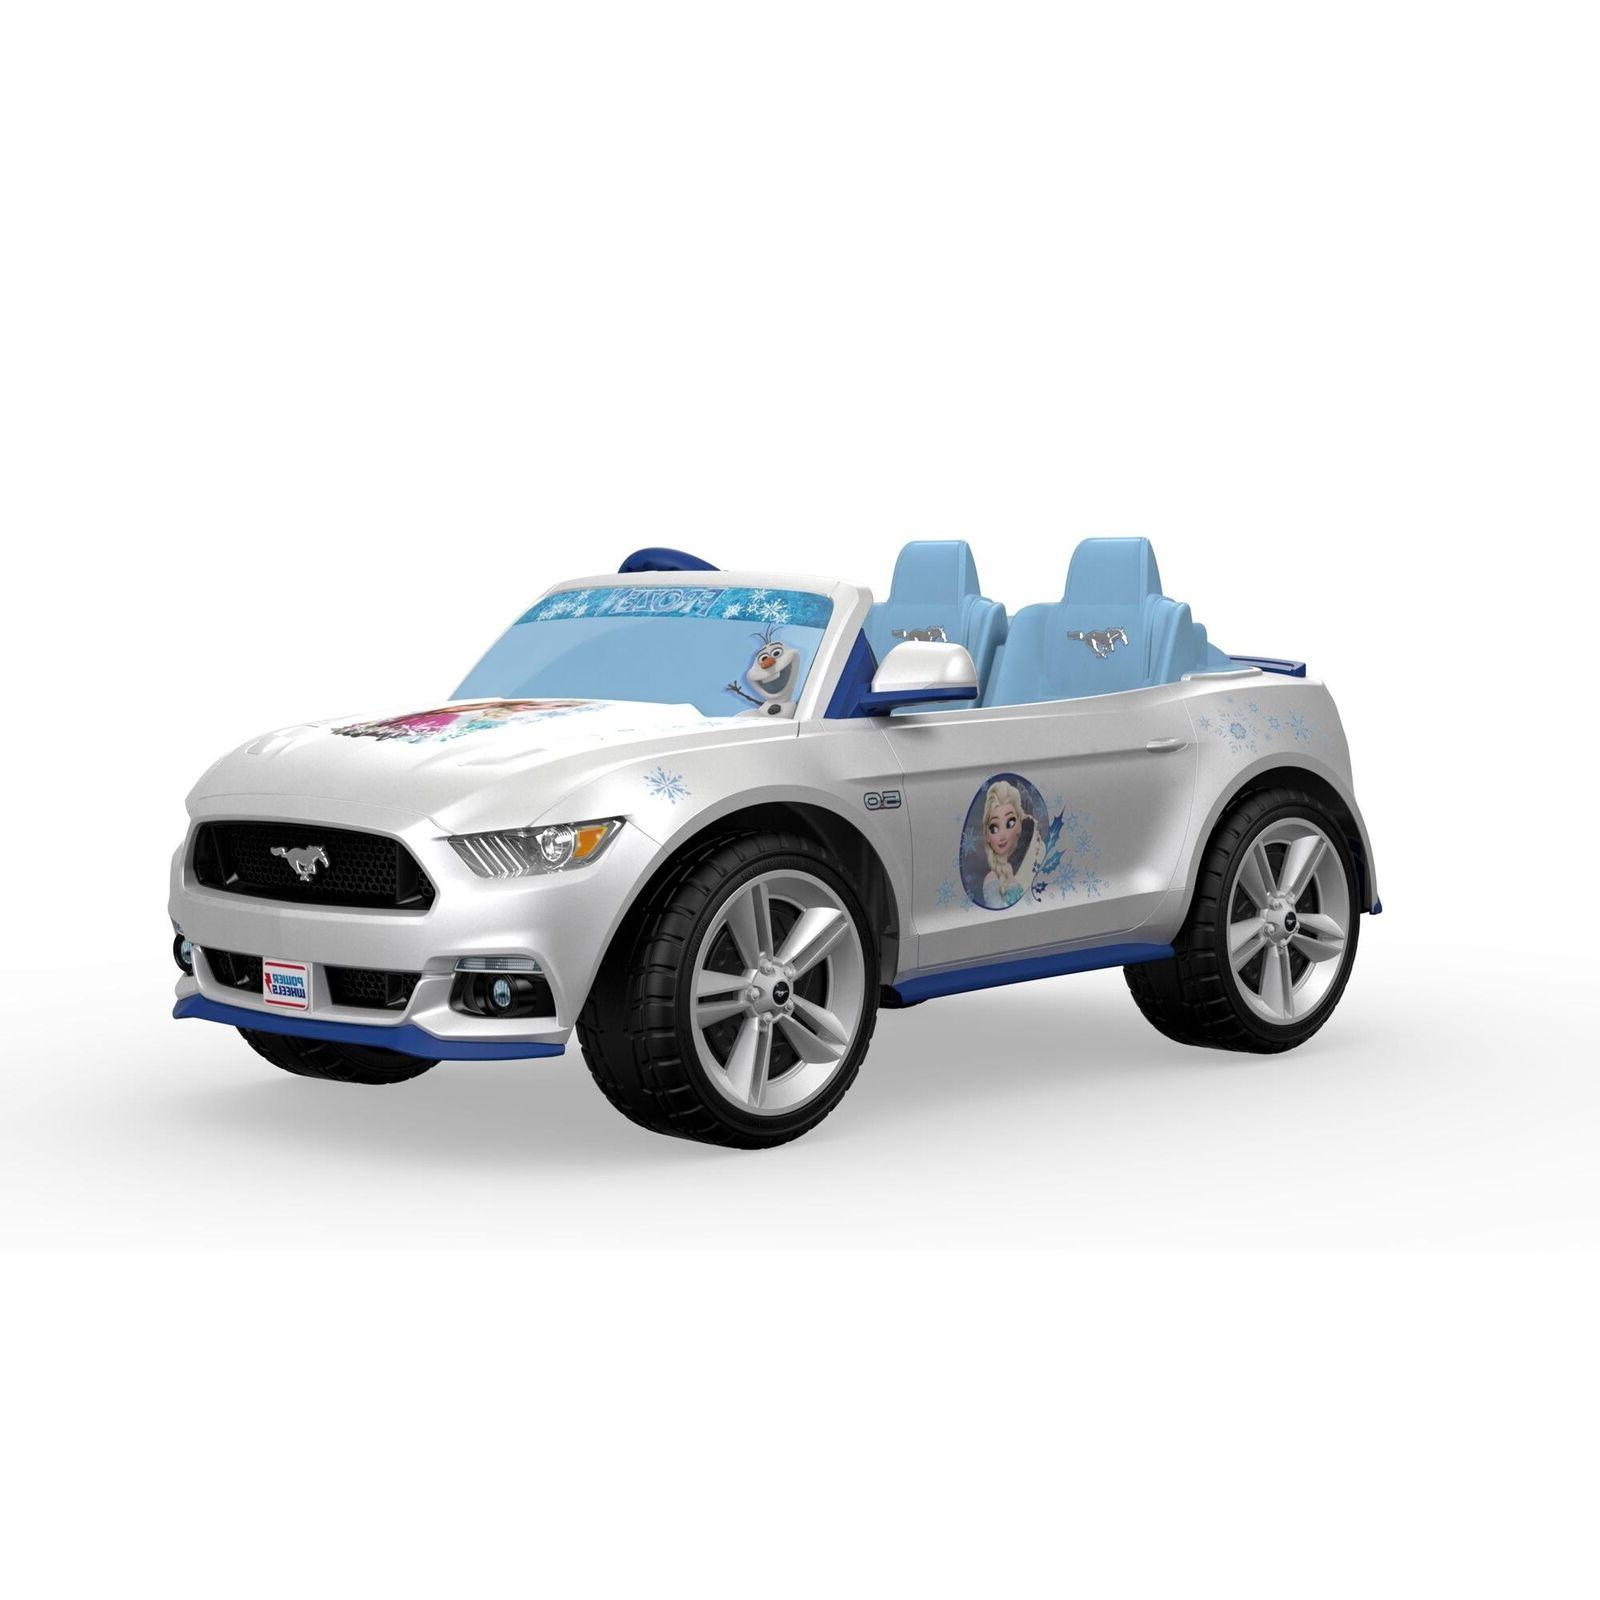 Electric Cars For Kids To Frozen Mustang Motorized Vehicle